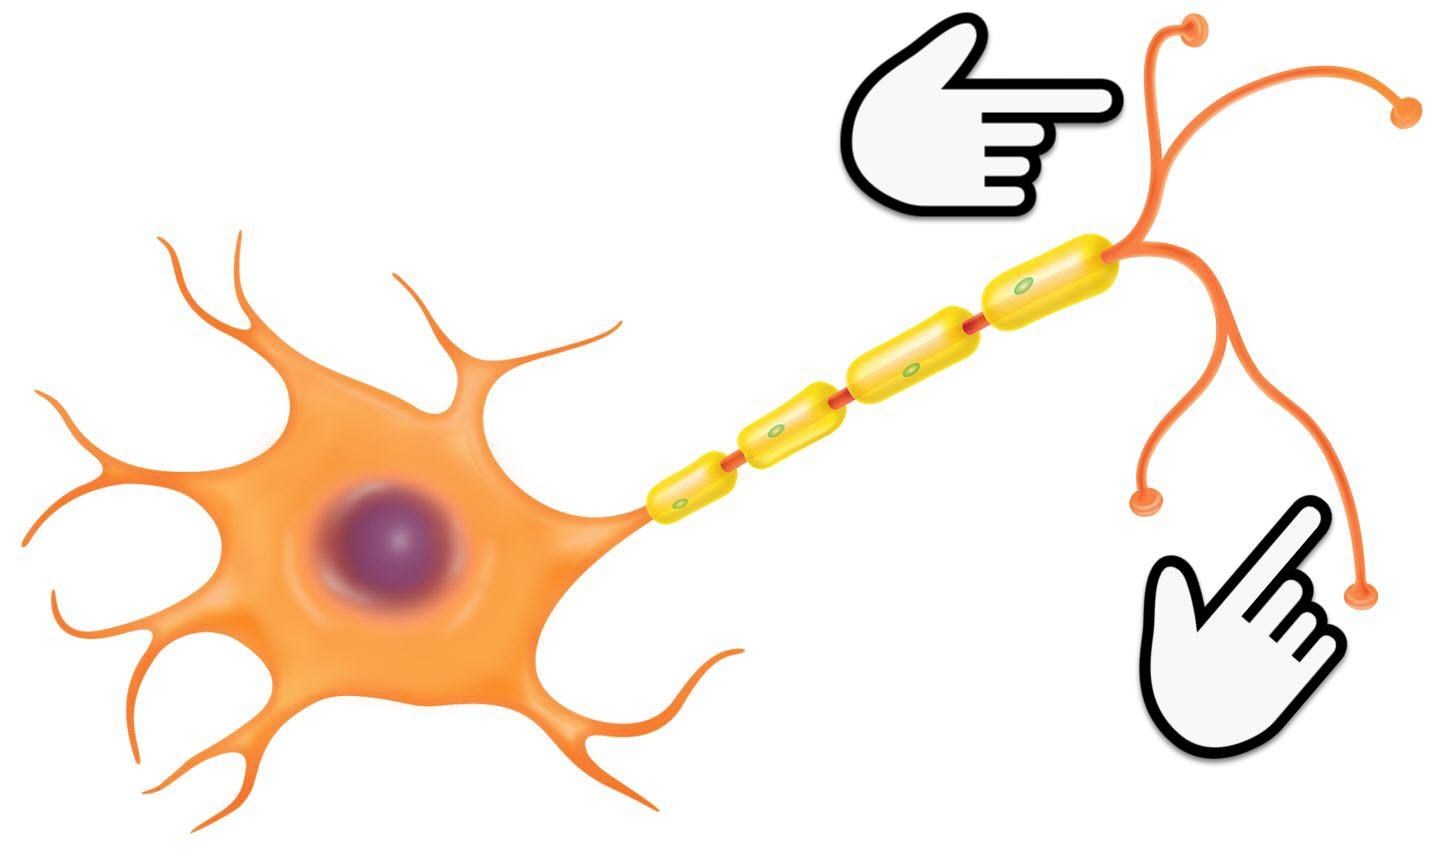 Neuron clipart part Identify part Quizizz the Nervous